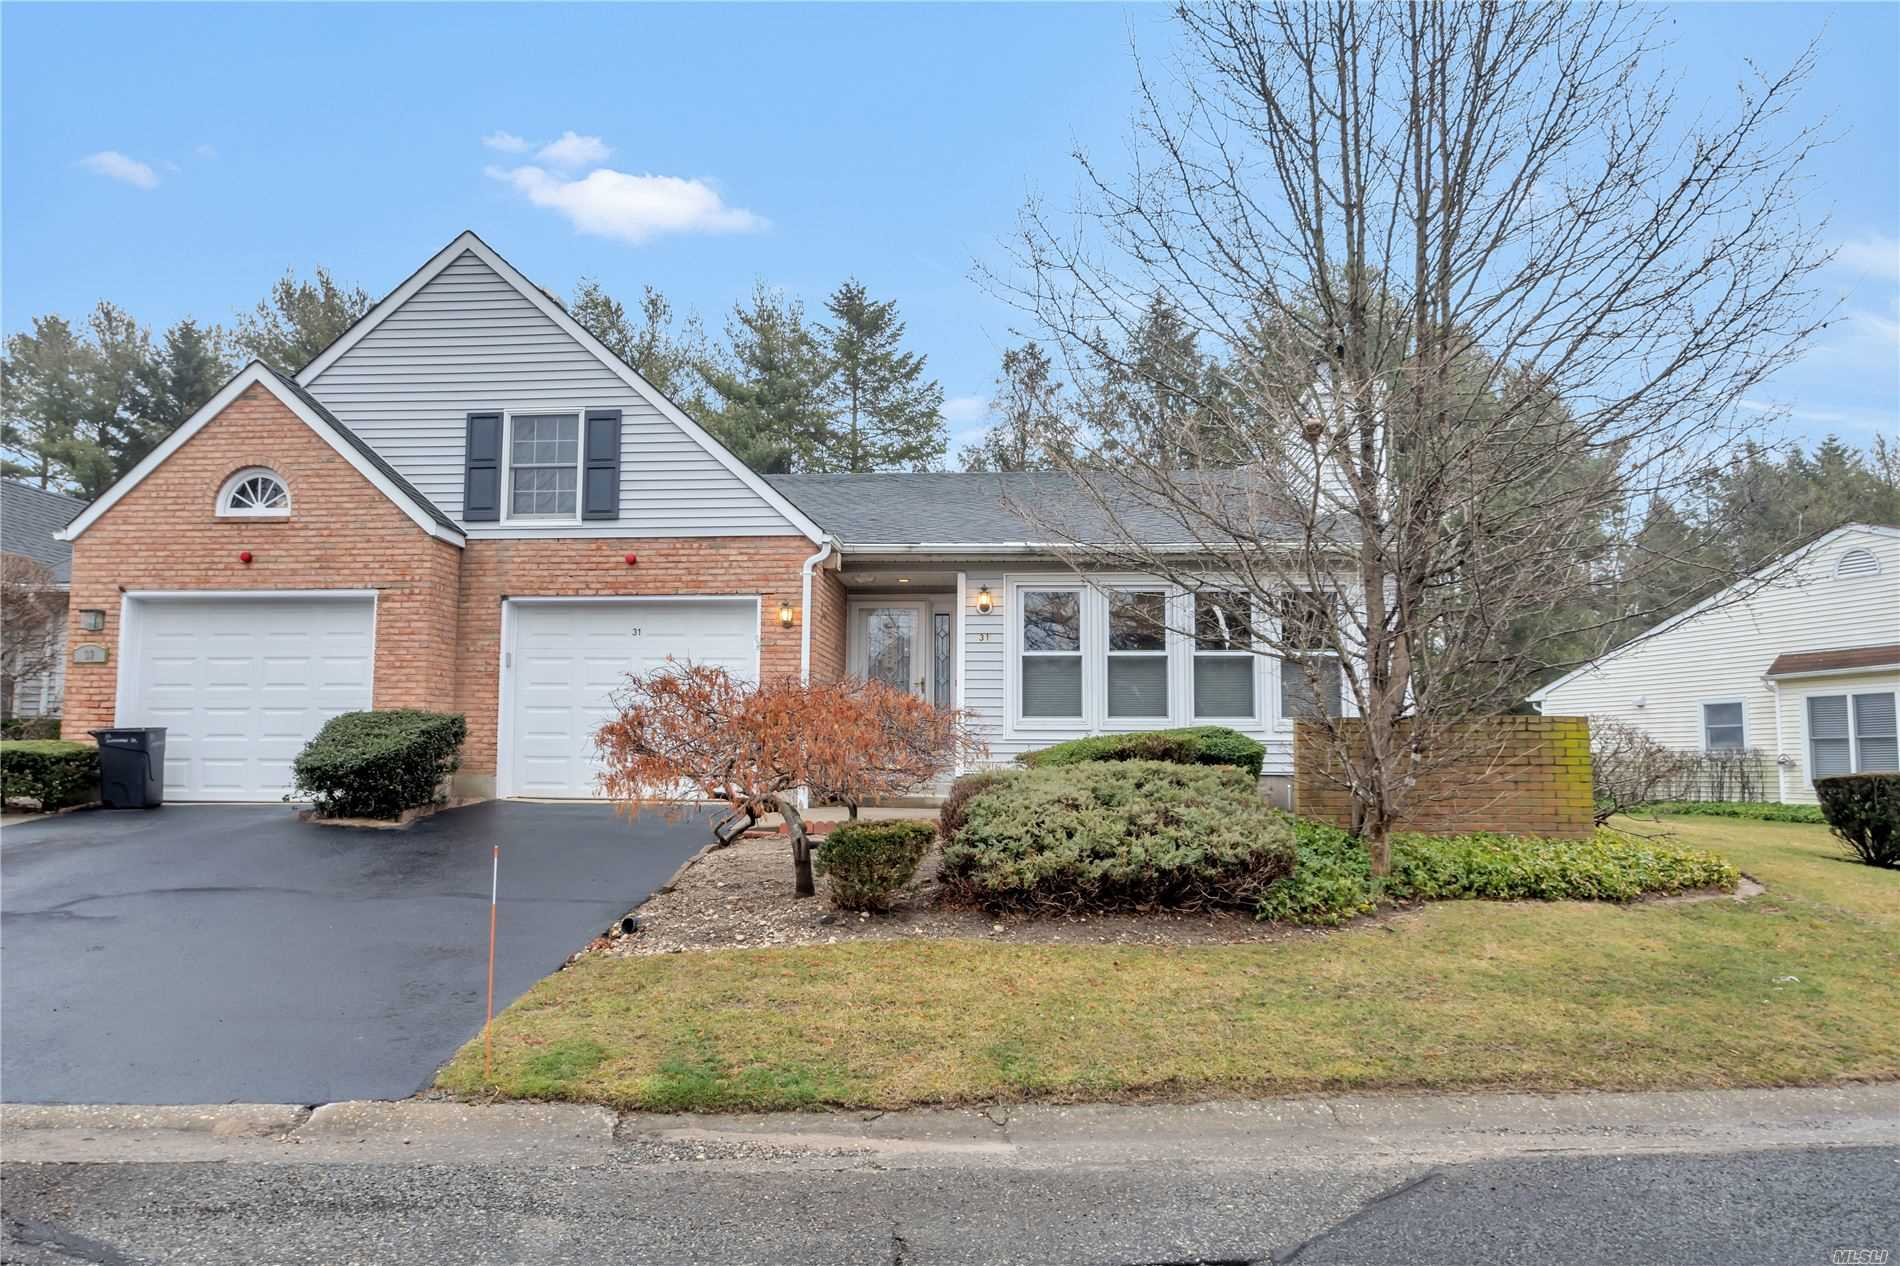 Property for sale at 31 Chippendale Drive, Mt. Sinai NY 11766, Mt. Sinai,  New York 11766